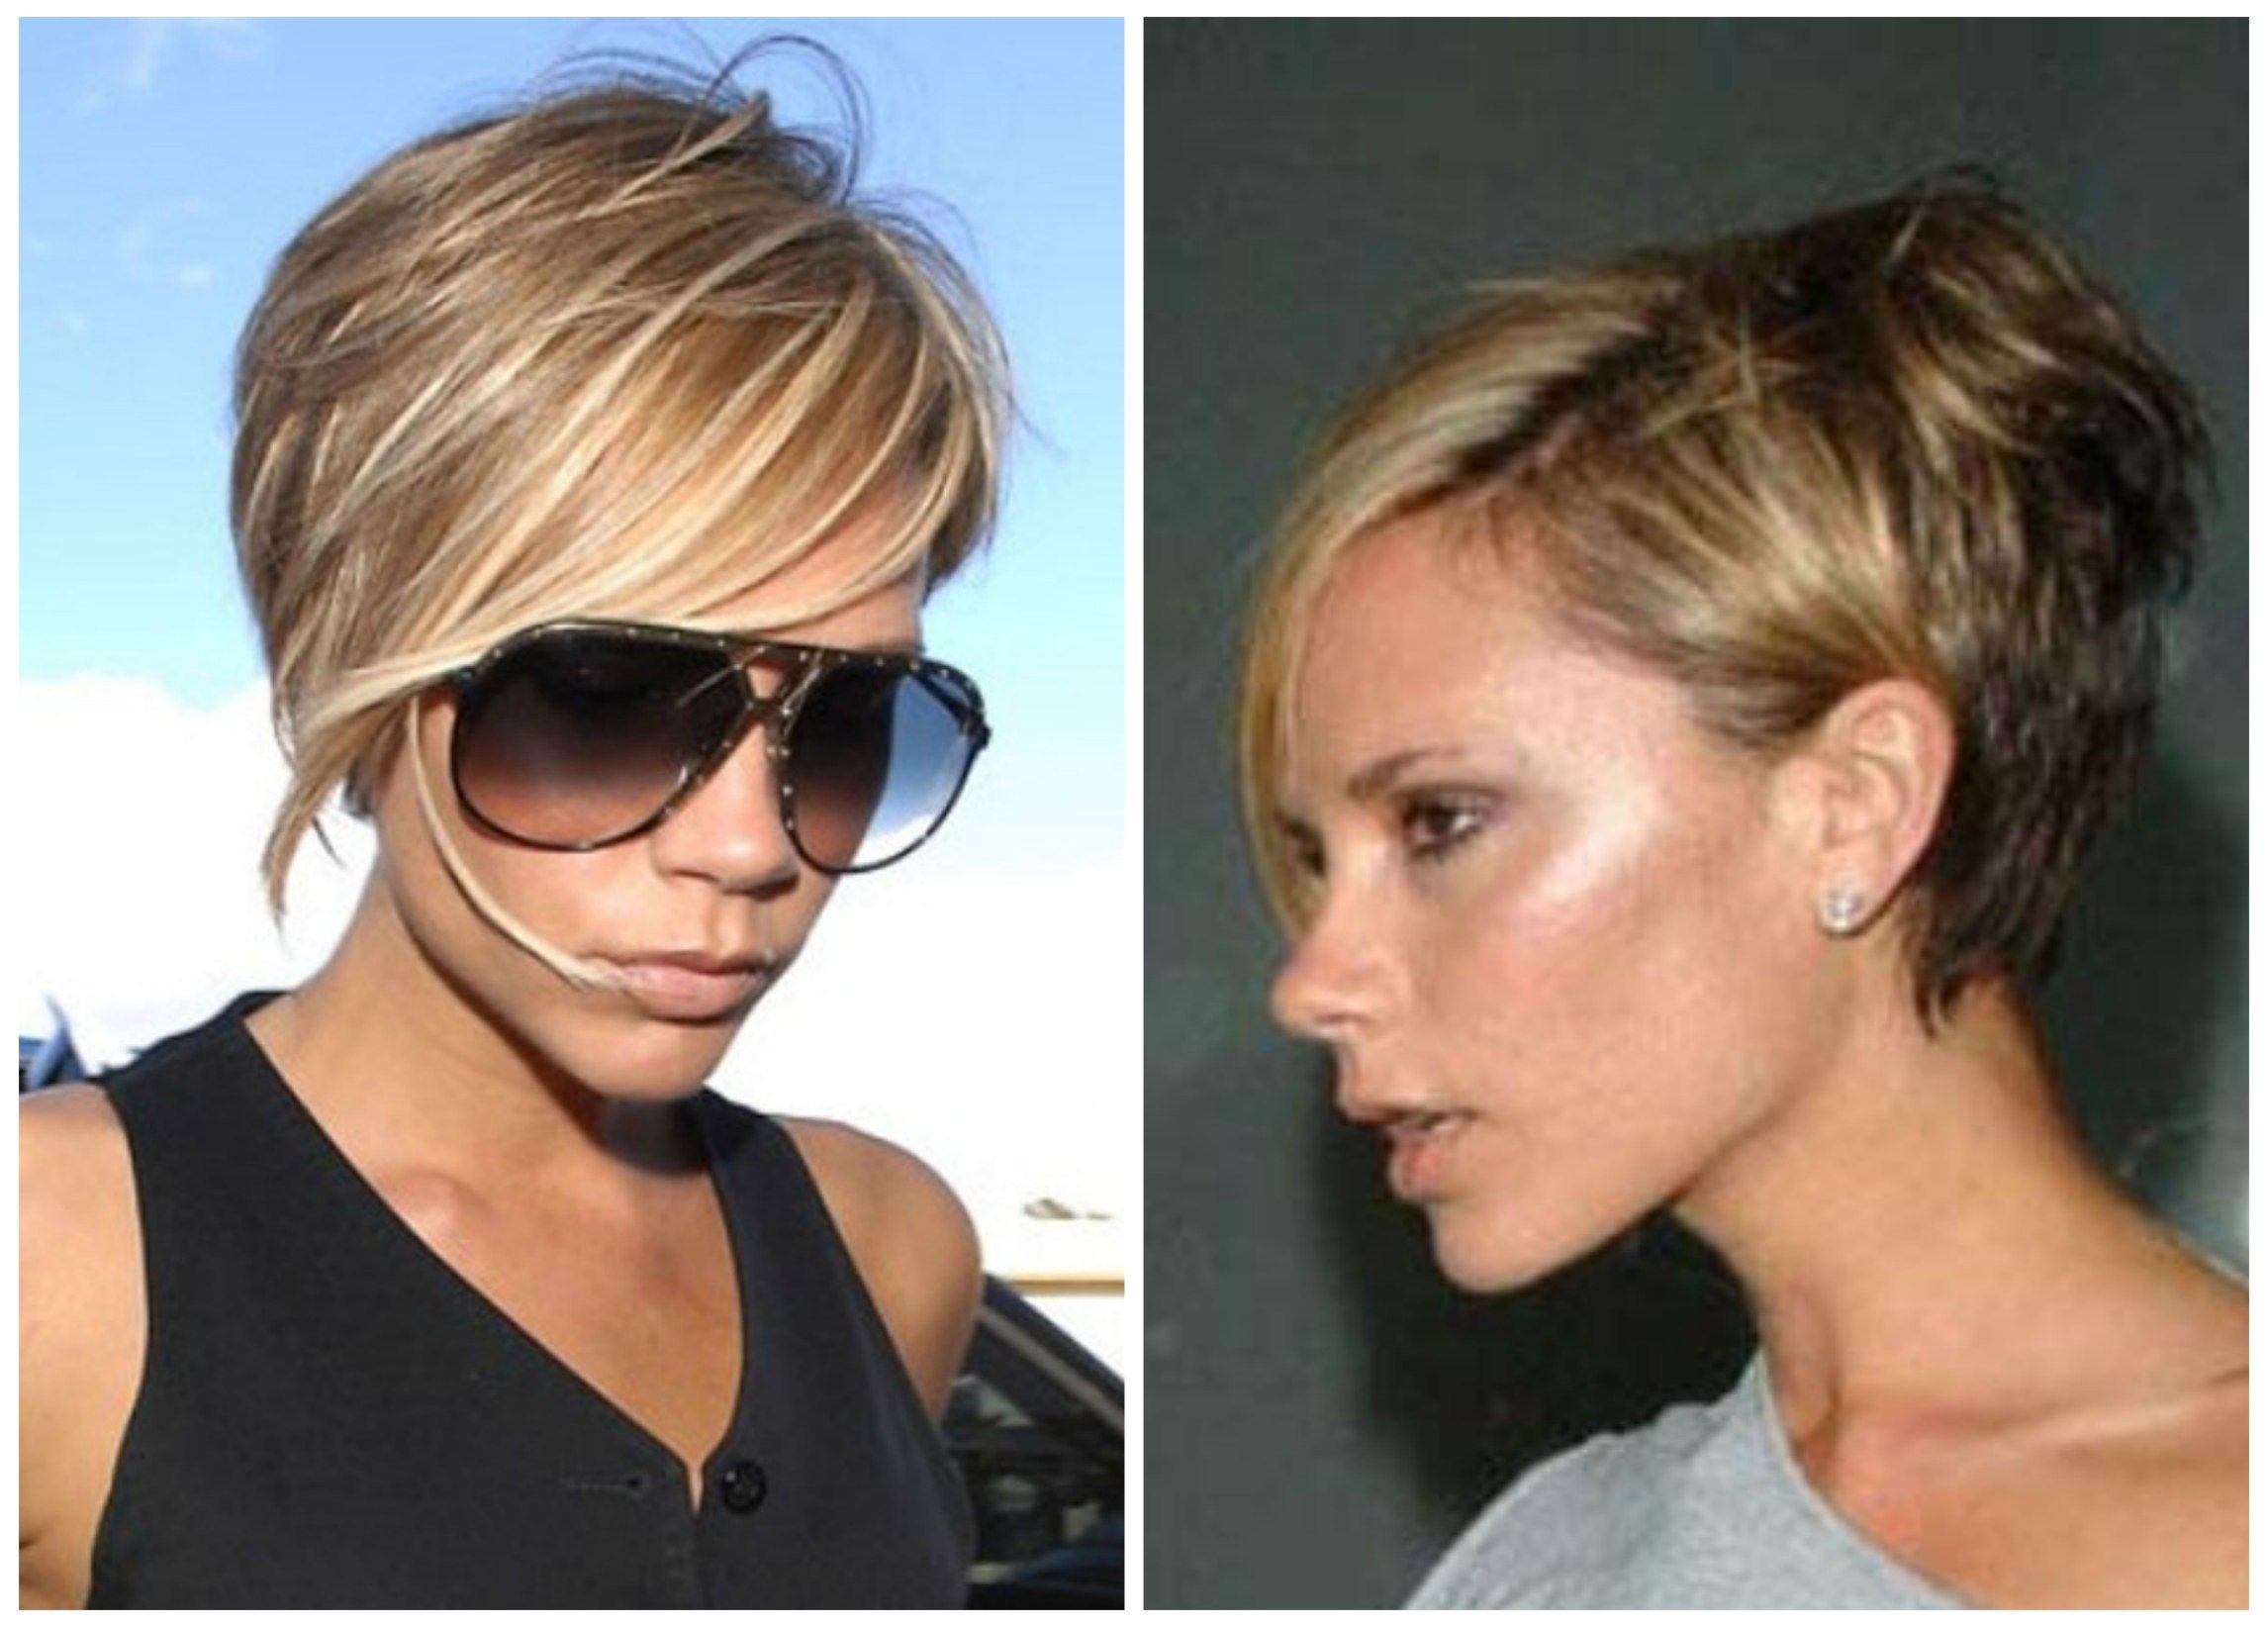 Victoria Beckham Short Hairstyles Front And Back 003 Coiffure Courte Coupe De Cheveux Cheveux Courts